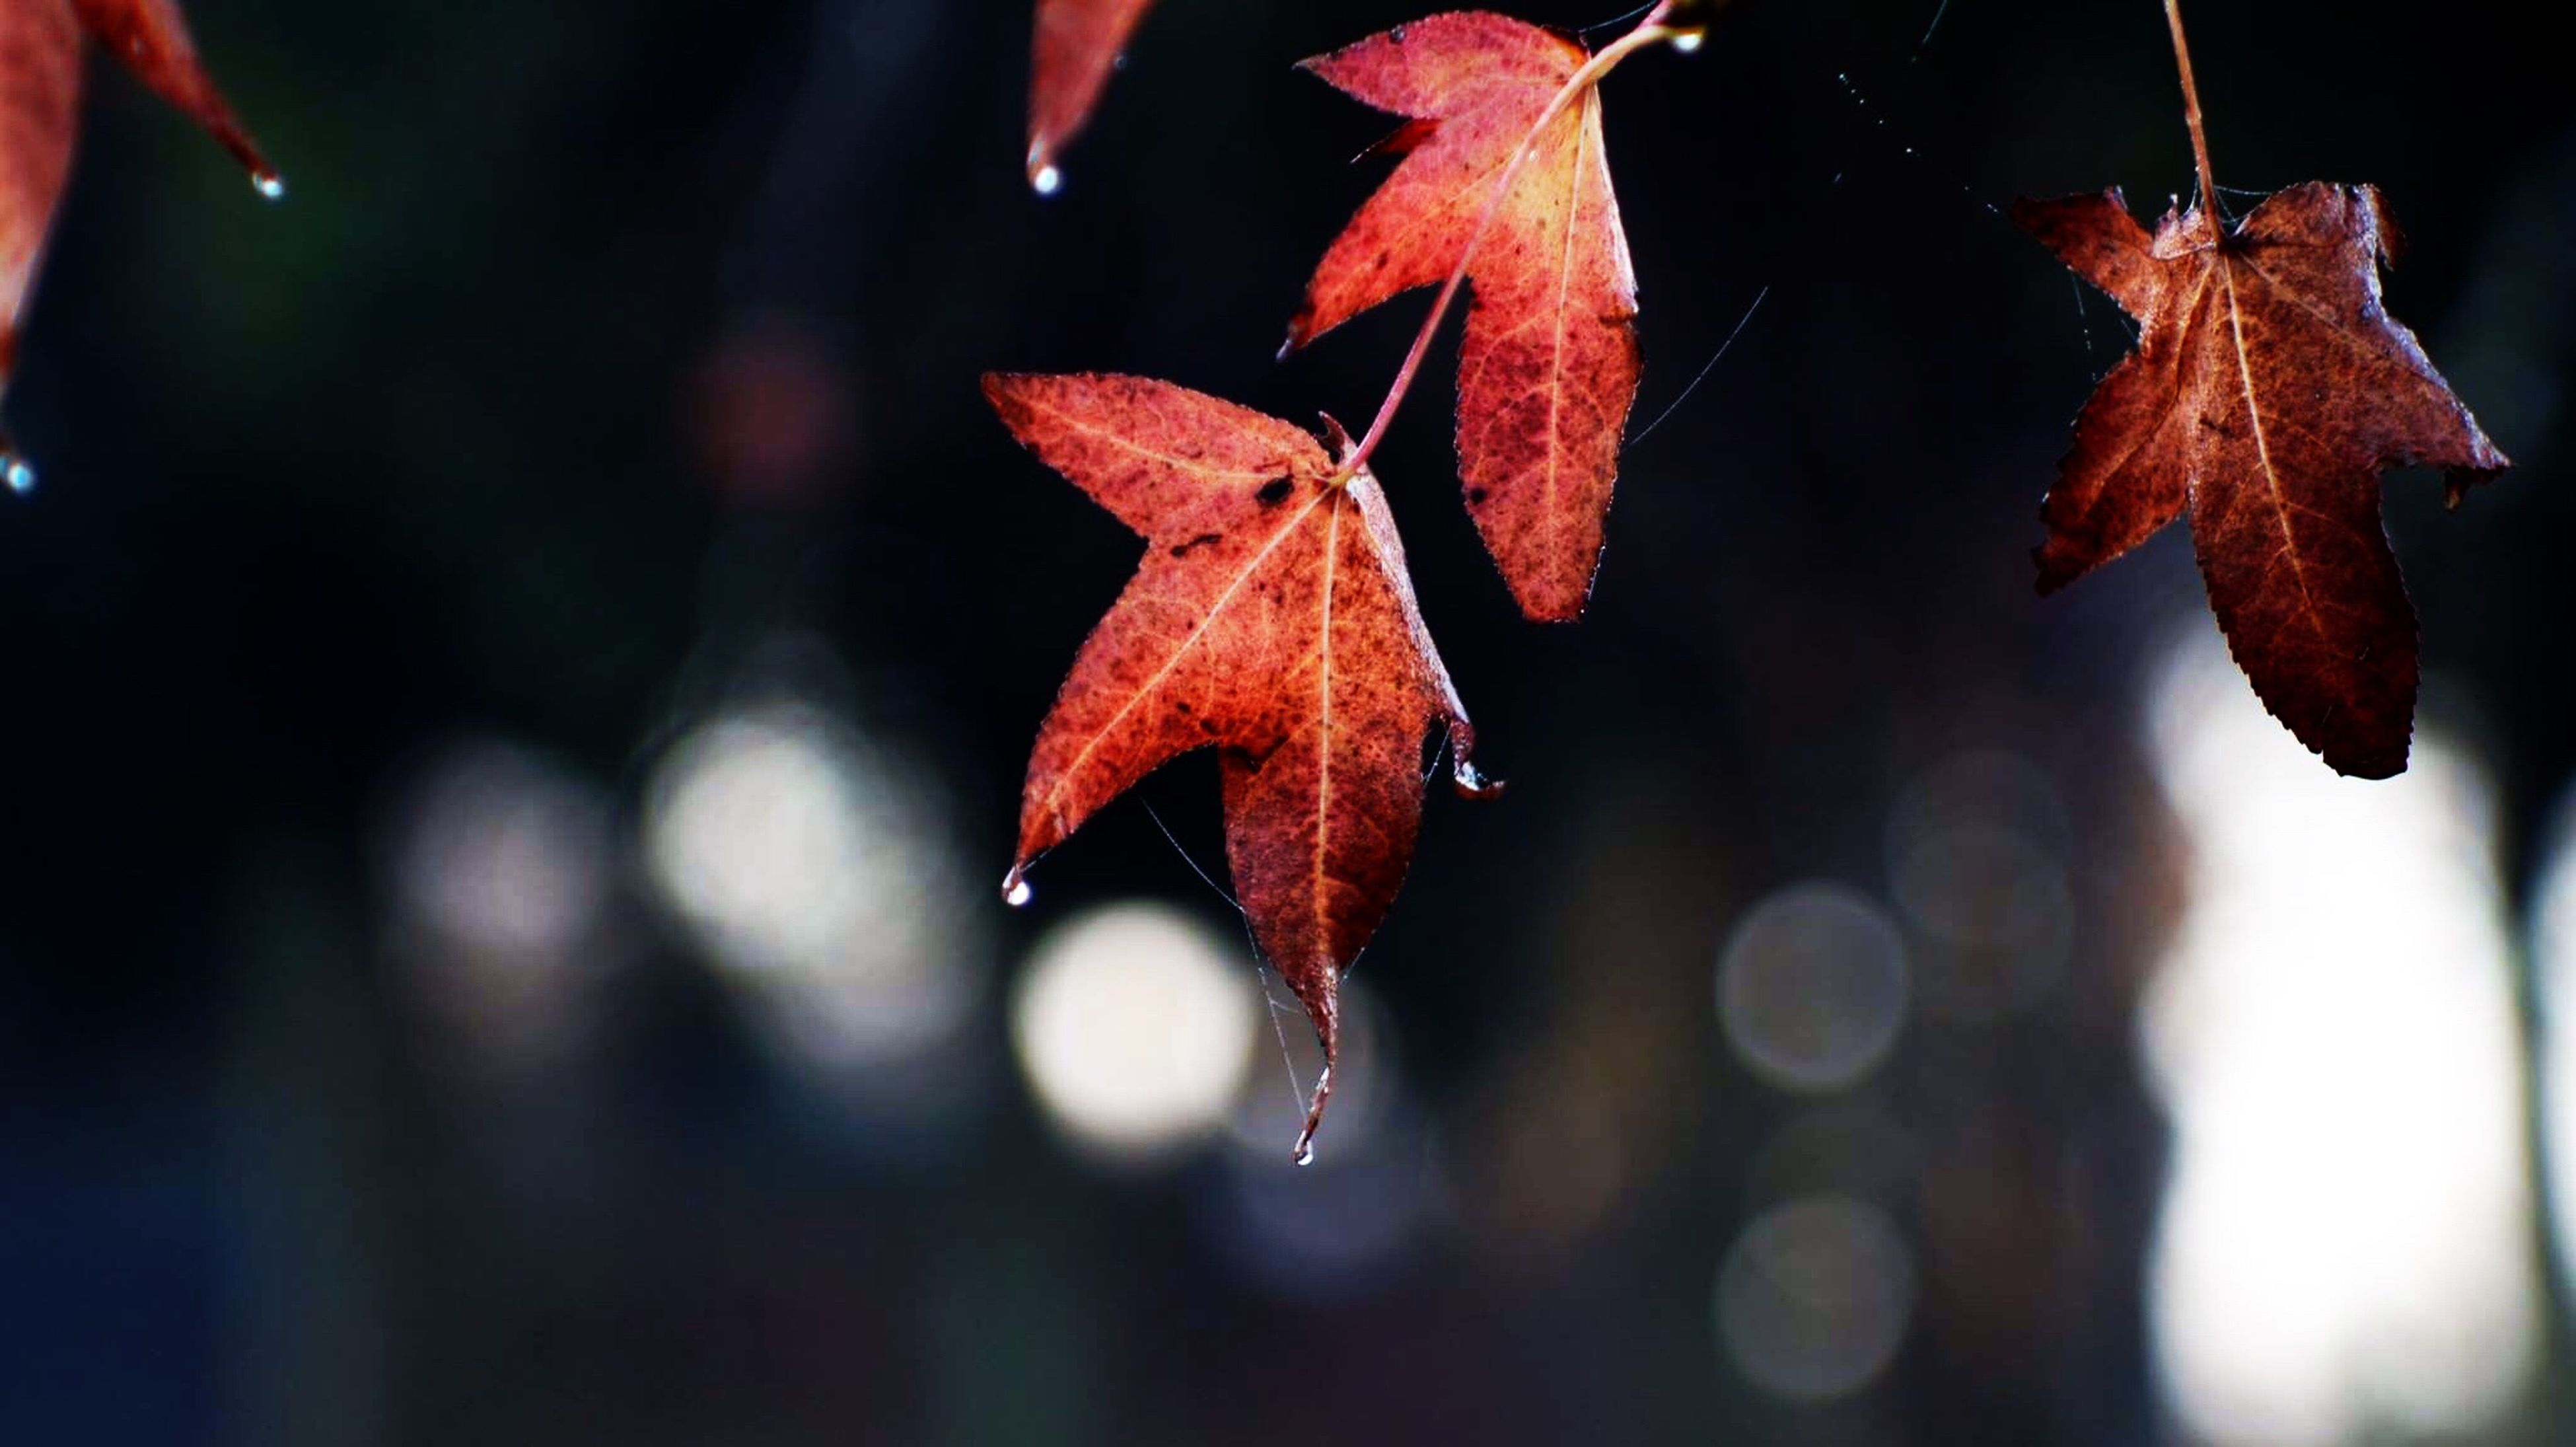 leaf, close-up, autumn, focus on foreground, change, season, nature, water, growth, drop, leaves, orange color, red, beauty in nature, wet, fragility, leaf vein, maple leaf, plant, selective focus